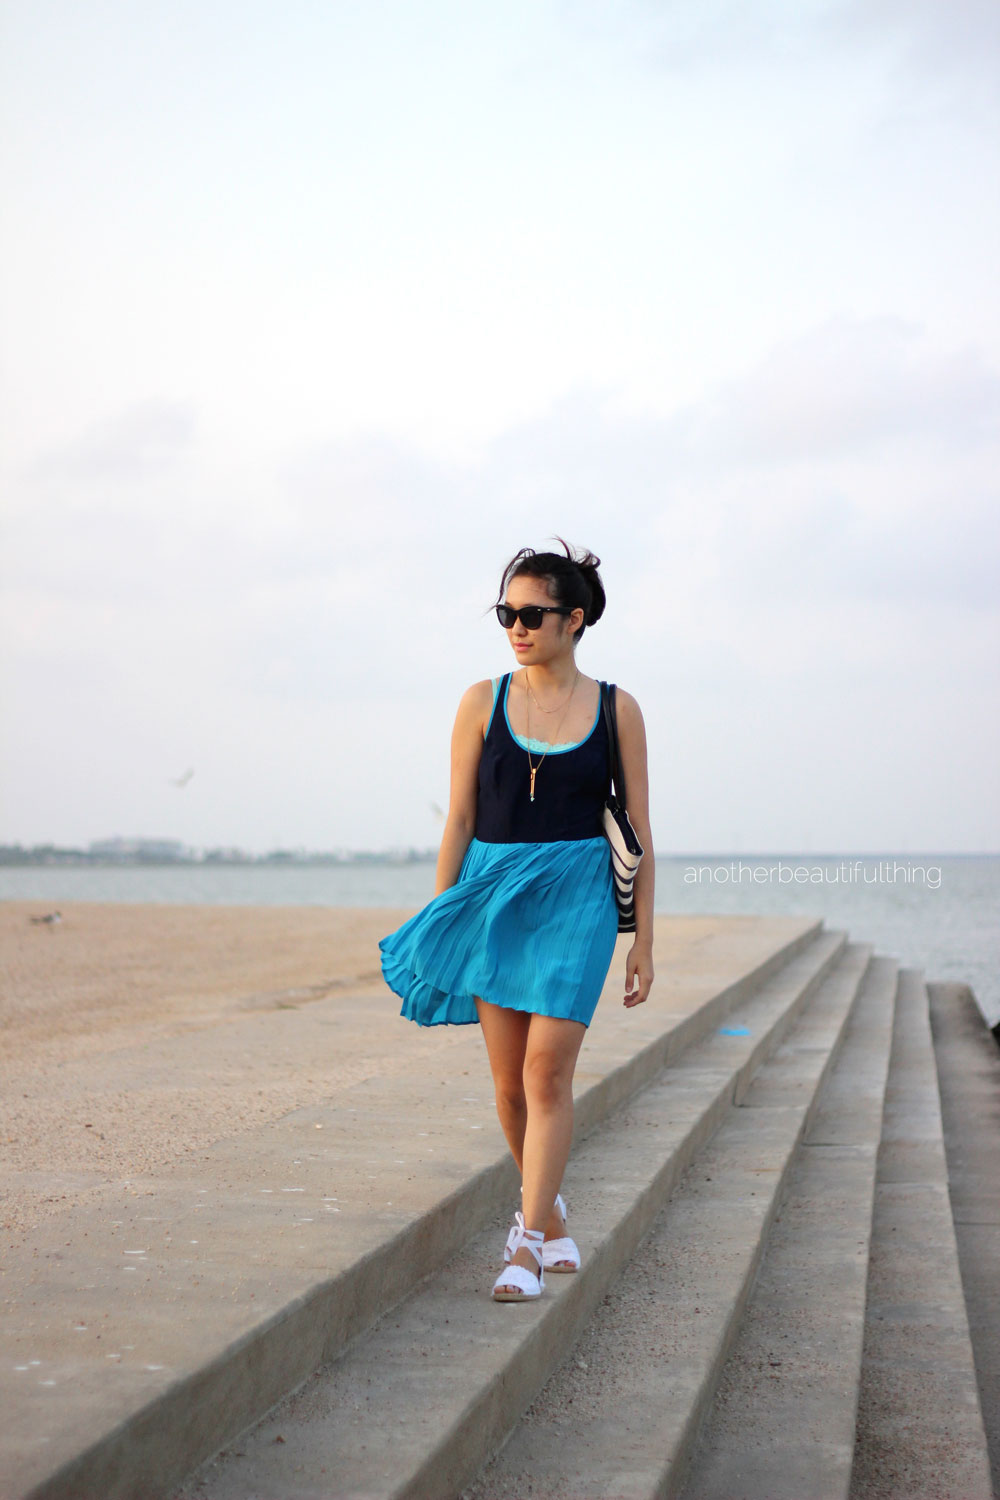 Ladylike beach outfit: Navy and turquoise dress and white espadrilles